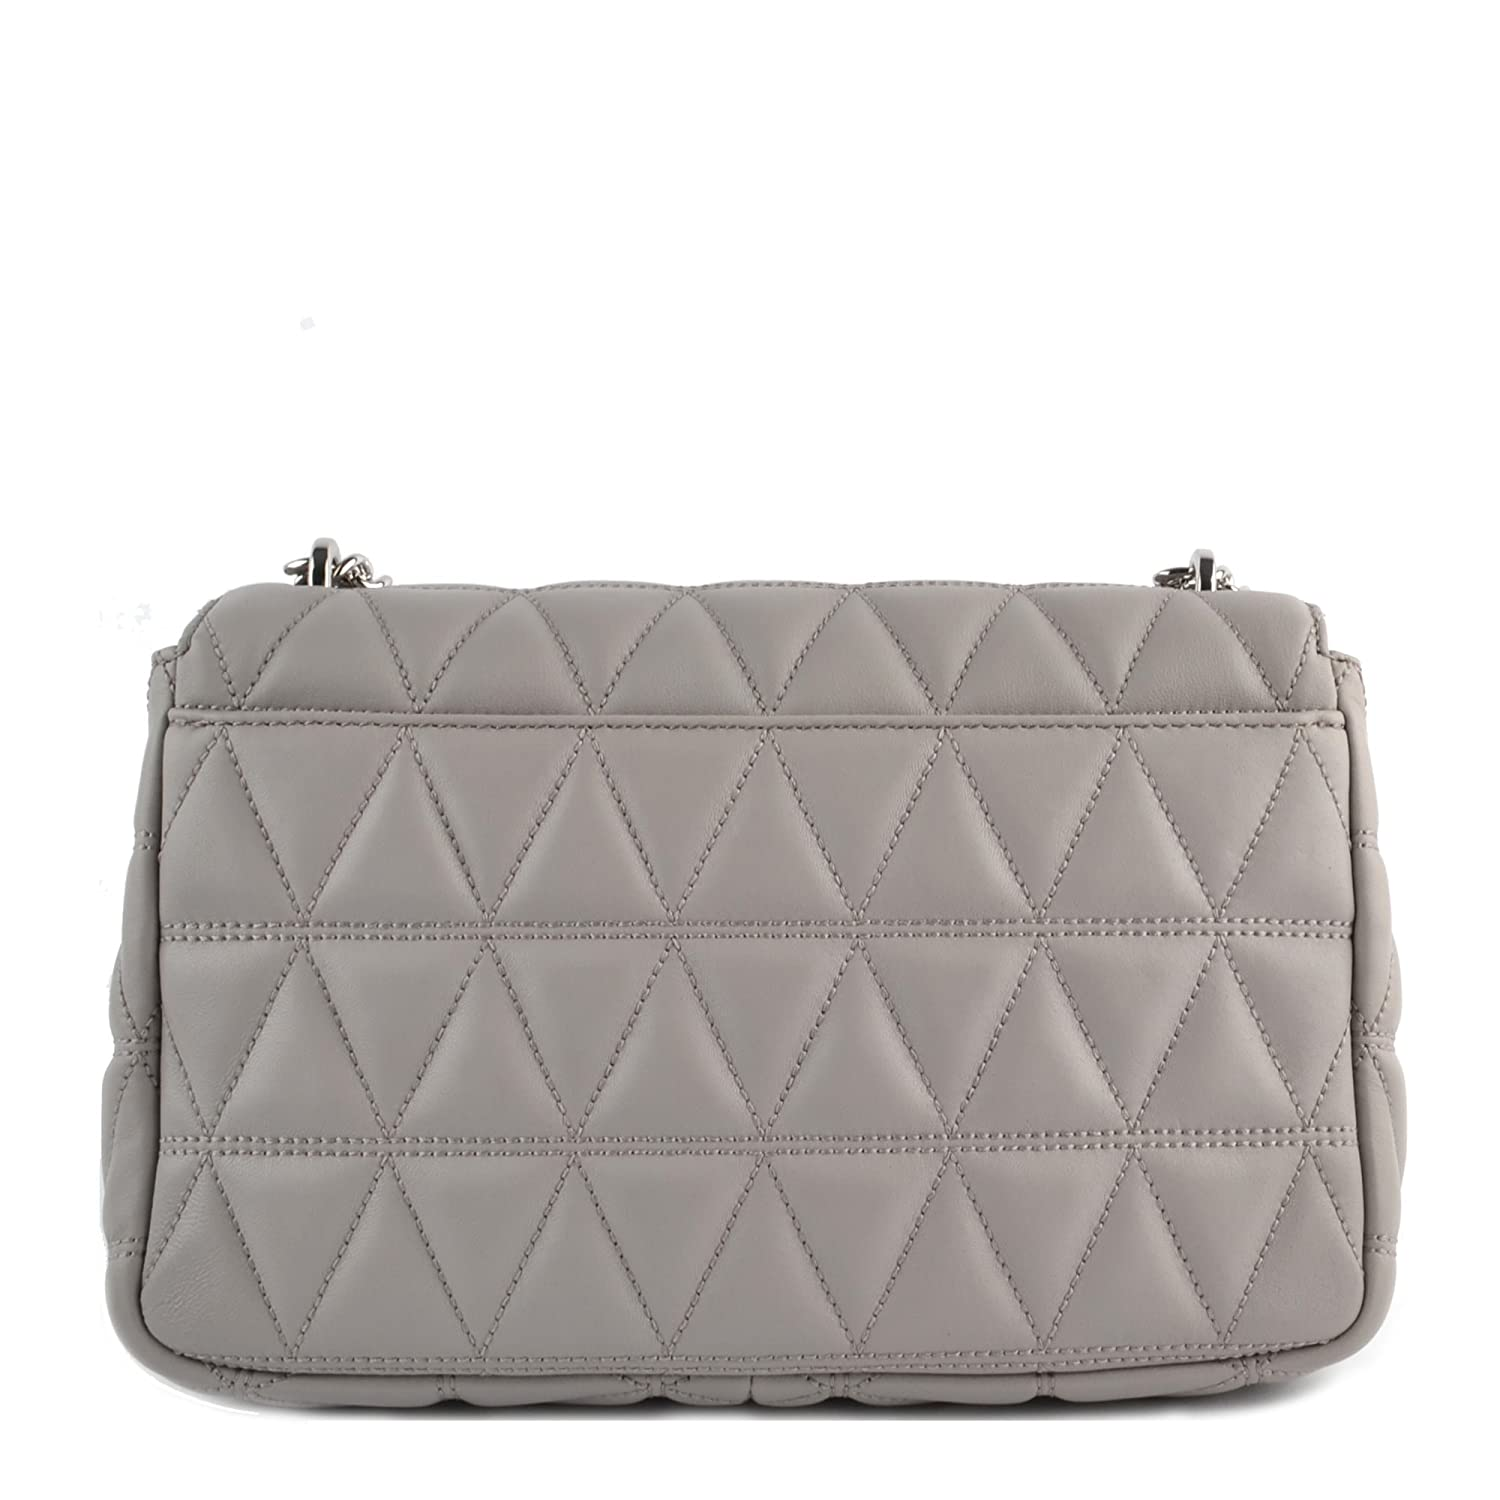 aaf6572e336a MICHAEL Michael Kors Sloan Large Quilted-Leather Shoulder Bag in Pearl  Grey: Handbags: Amazon.com